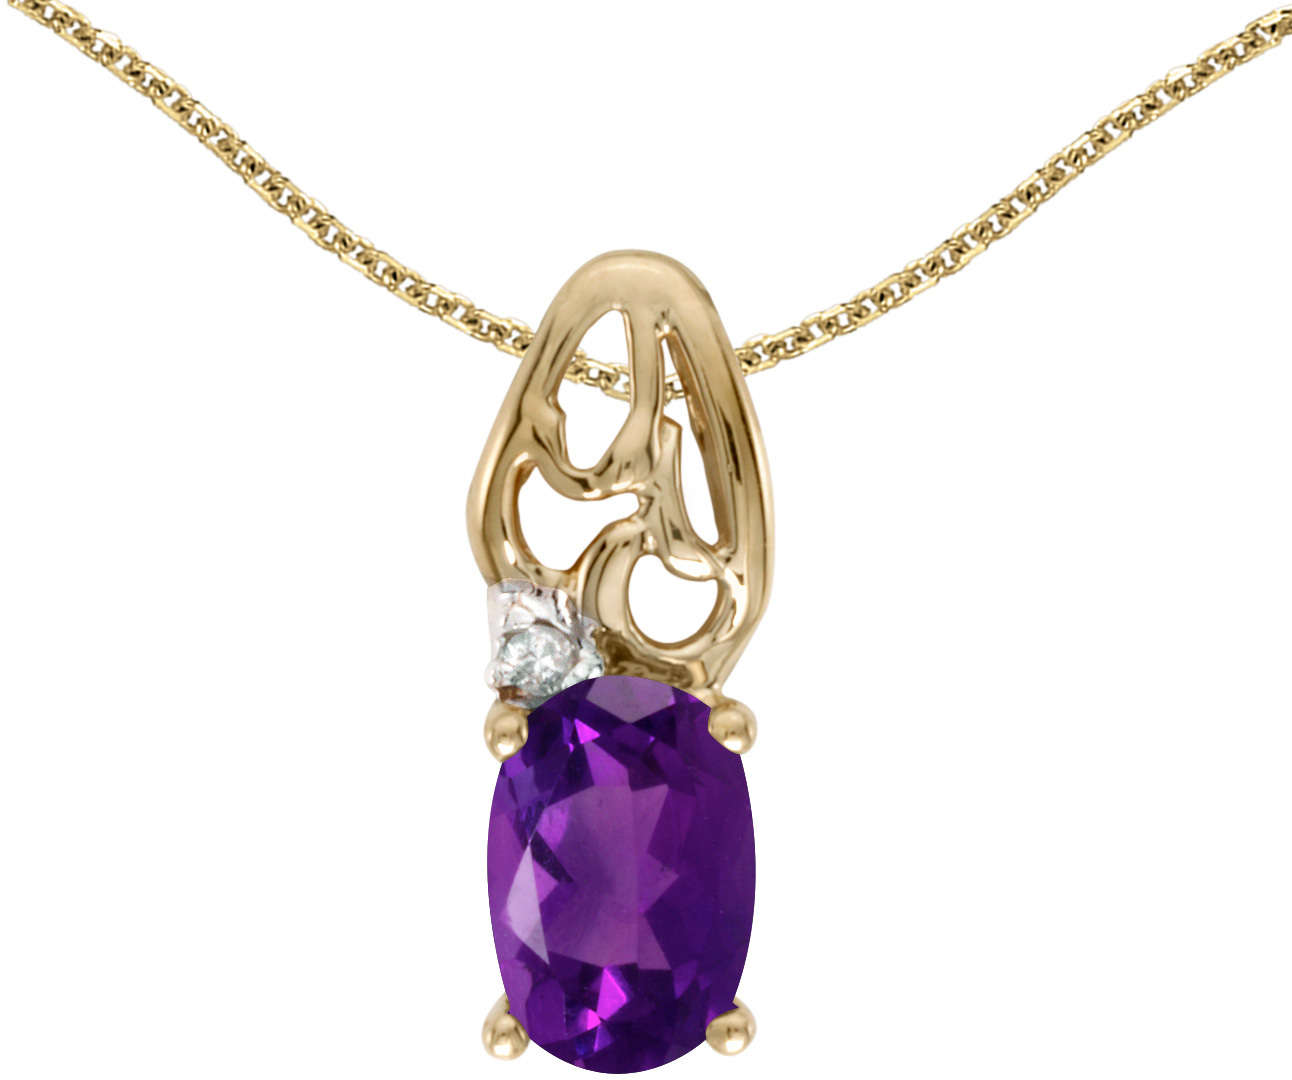 10k Yellow Gold Oval Amethyst & Diamond Pendant (Chain NOT included) P2582-02